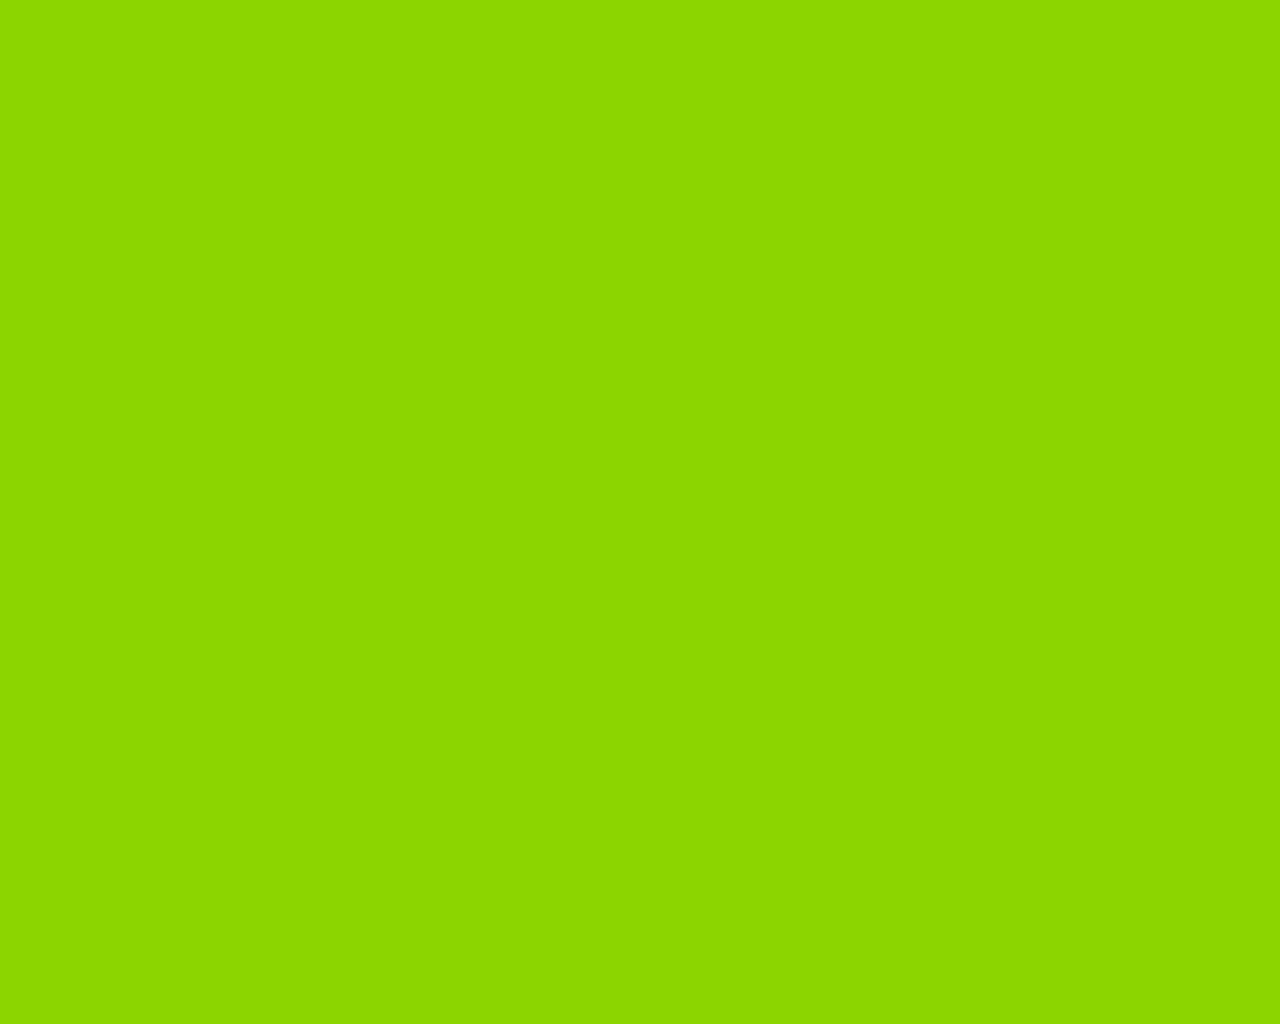 1280x1024 Sheen Green Solid Color Background